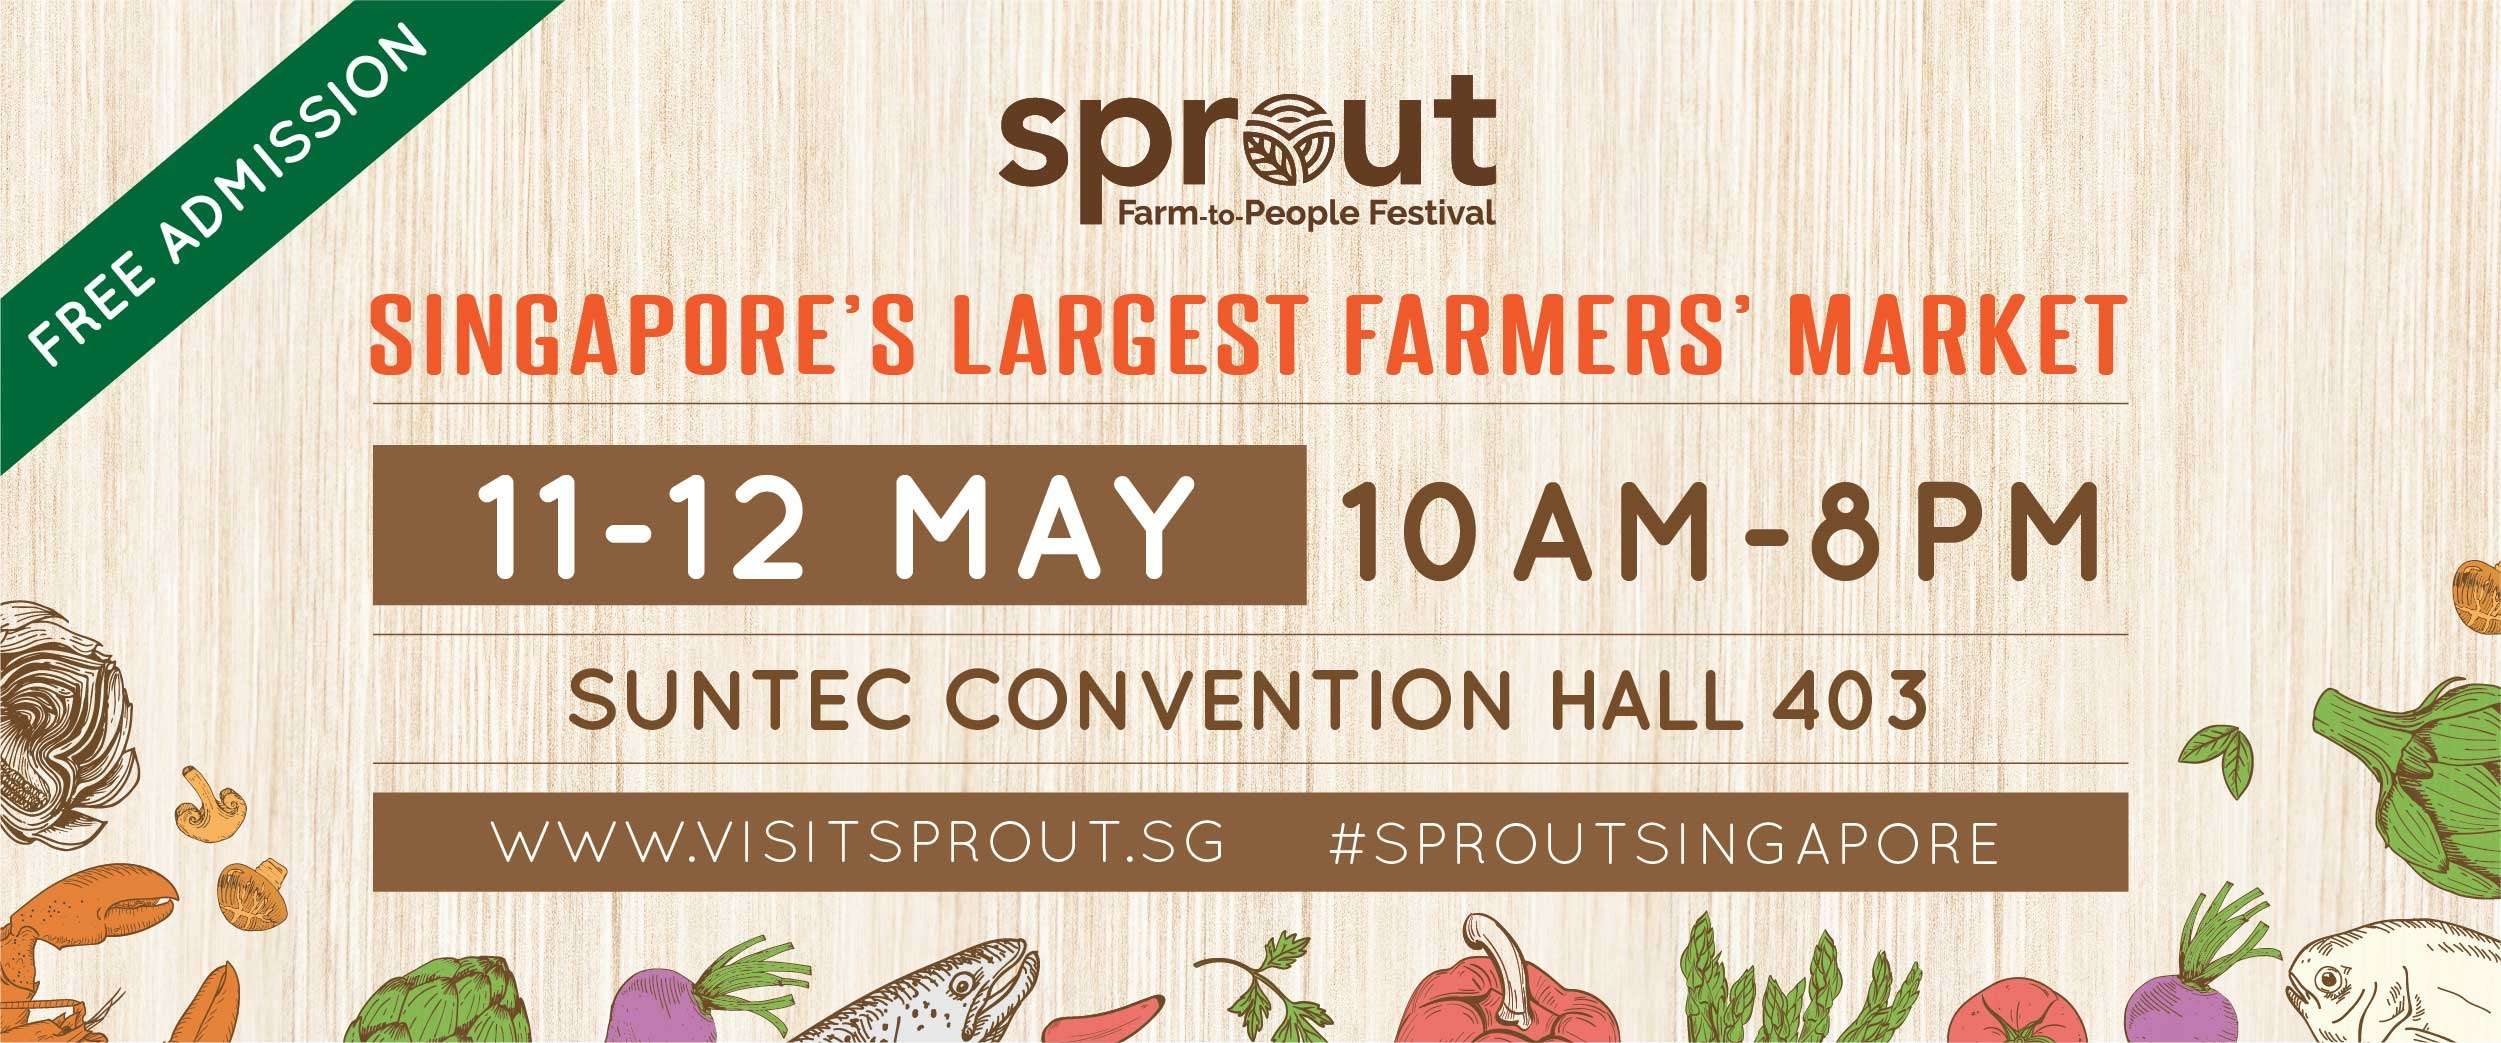 Sprout: Farm-to-People Festival, 11-12 May at Suntec Convention Hall 403